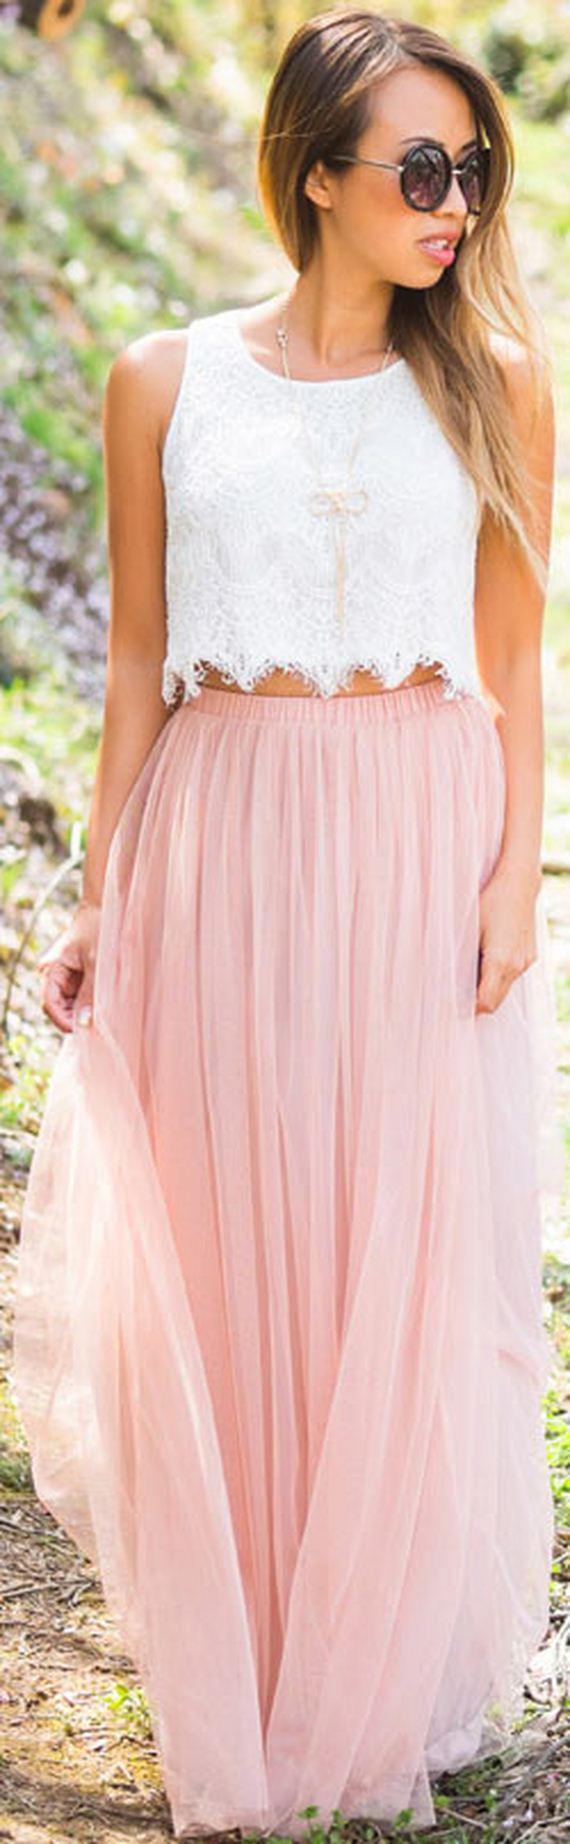 17-Cute-Summer-Outfits